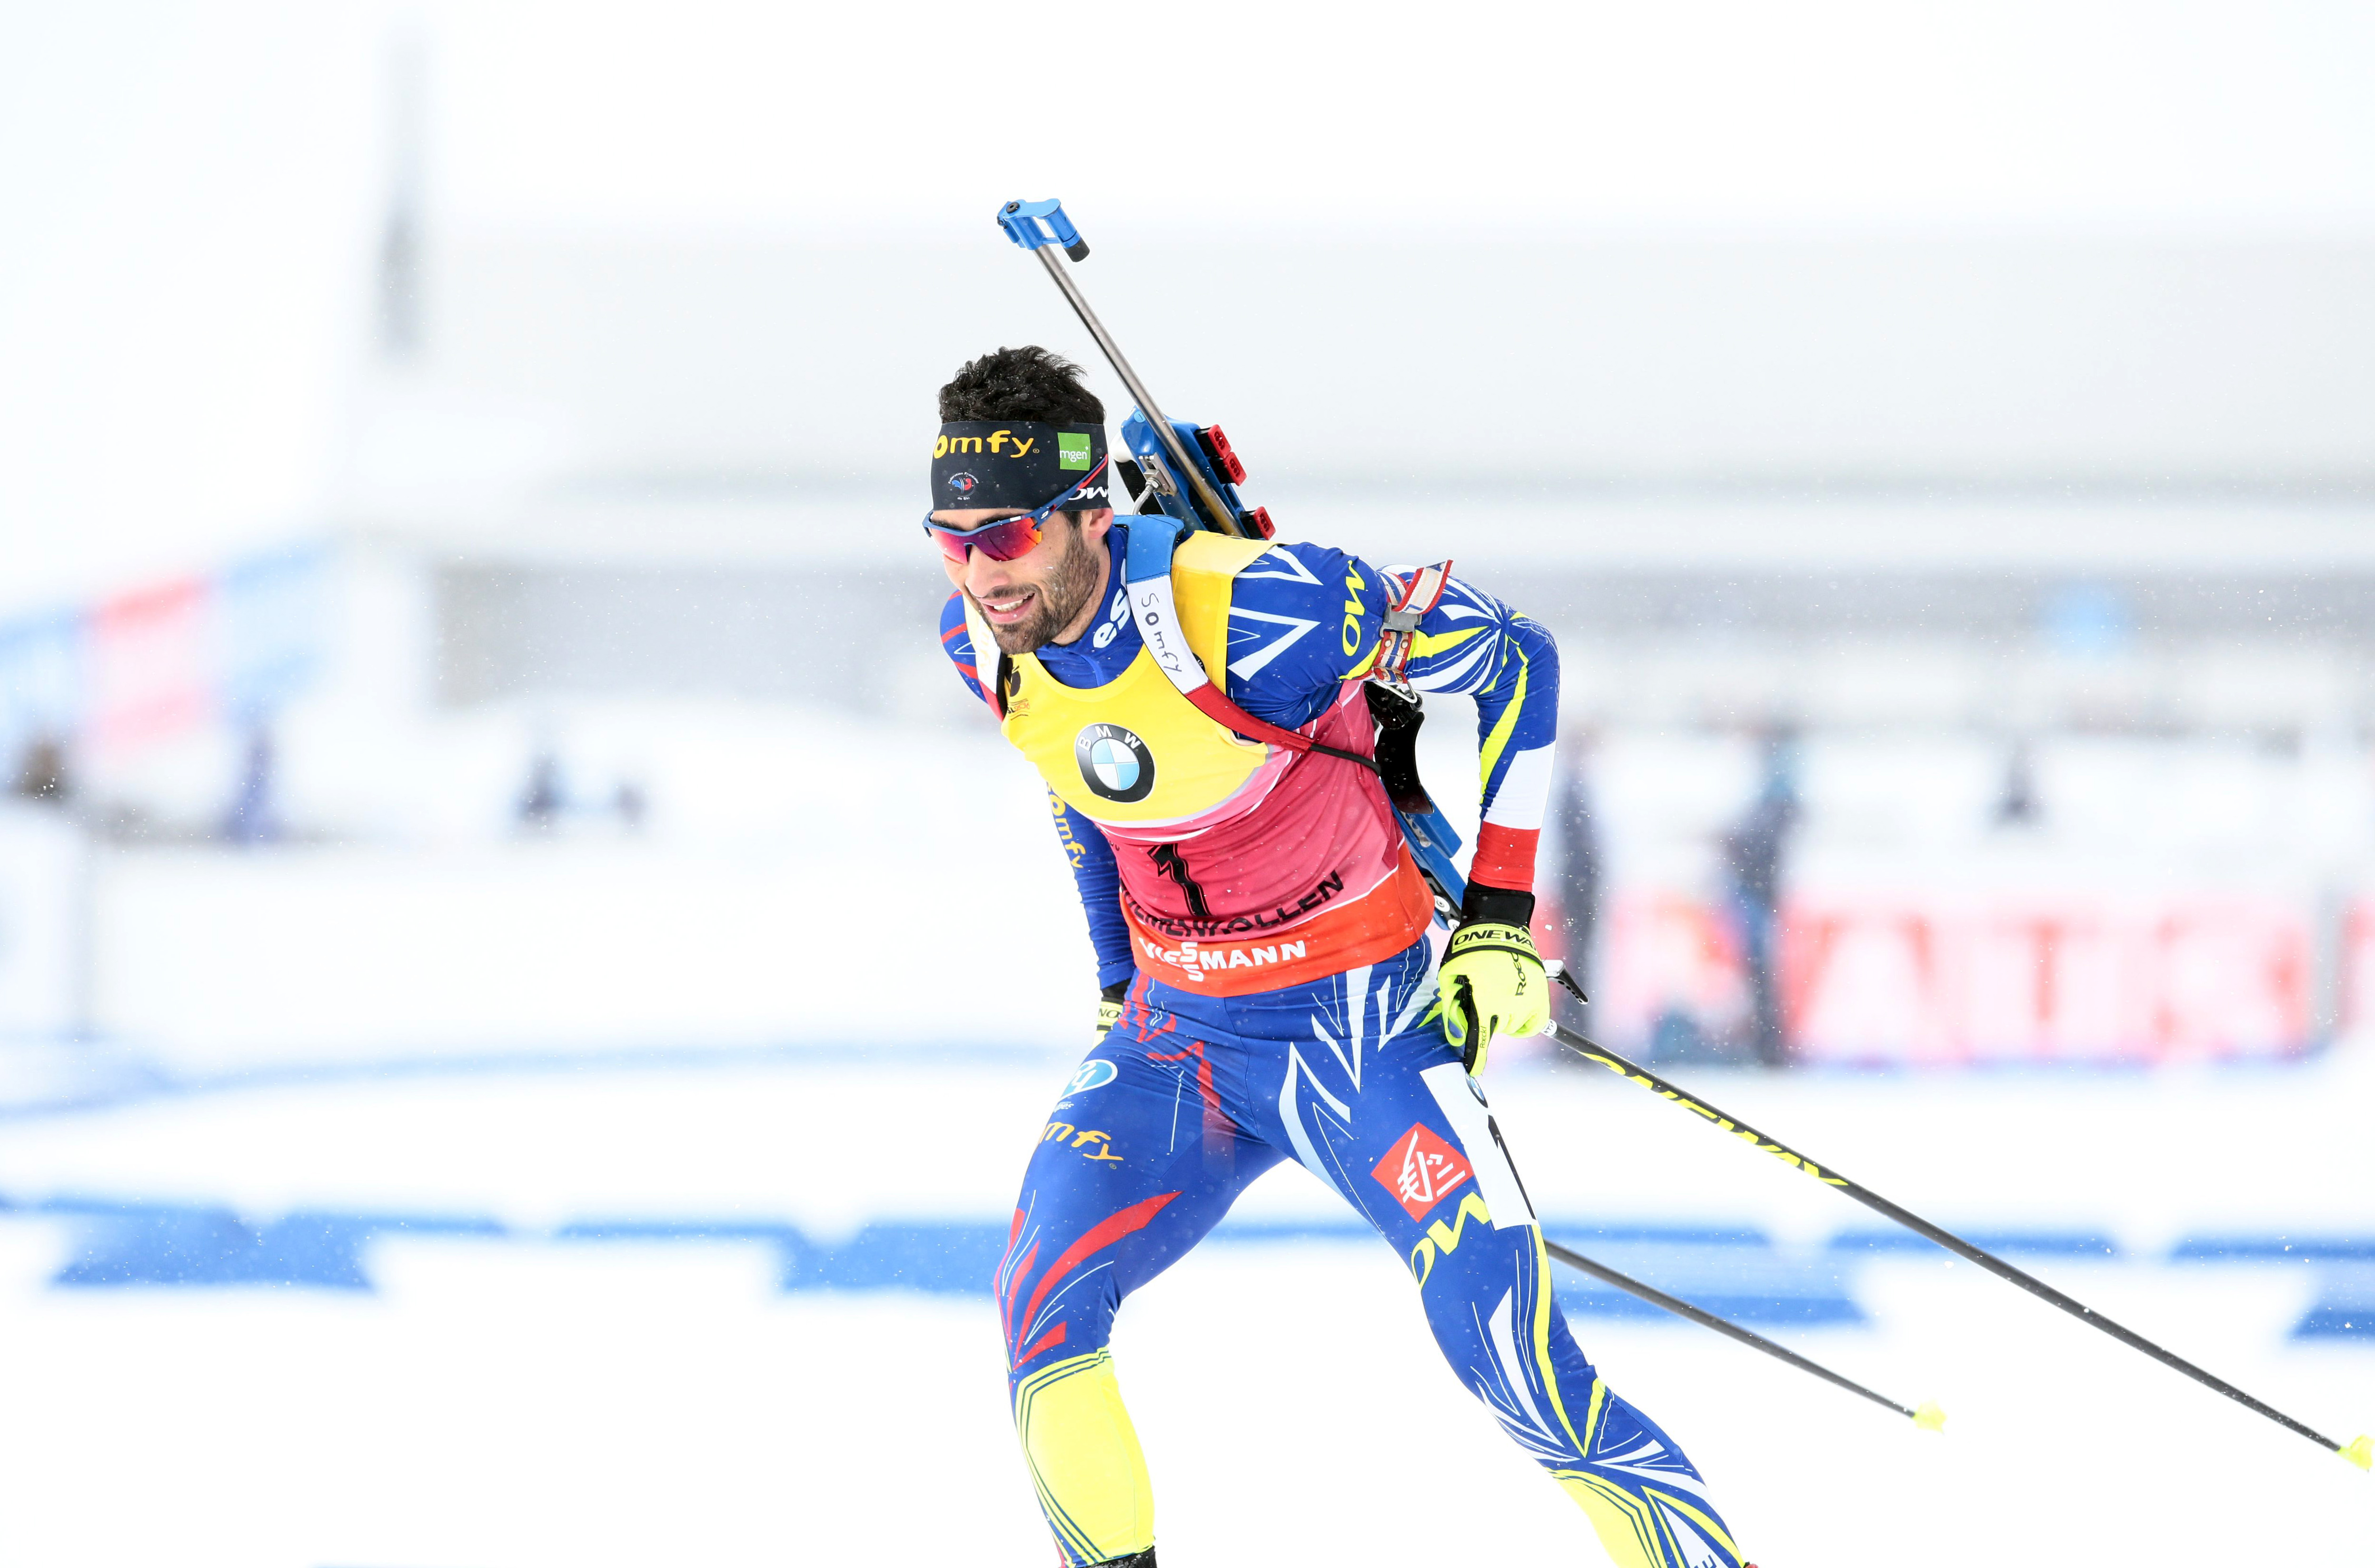 norway_biathlon_world_championships-b291_r9787.jpeg